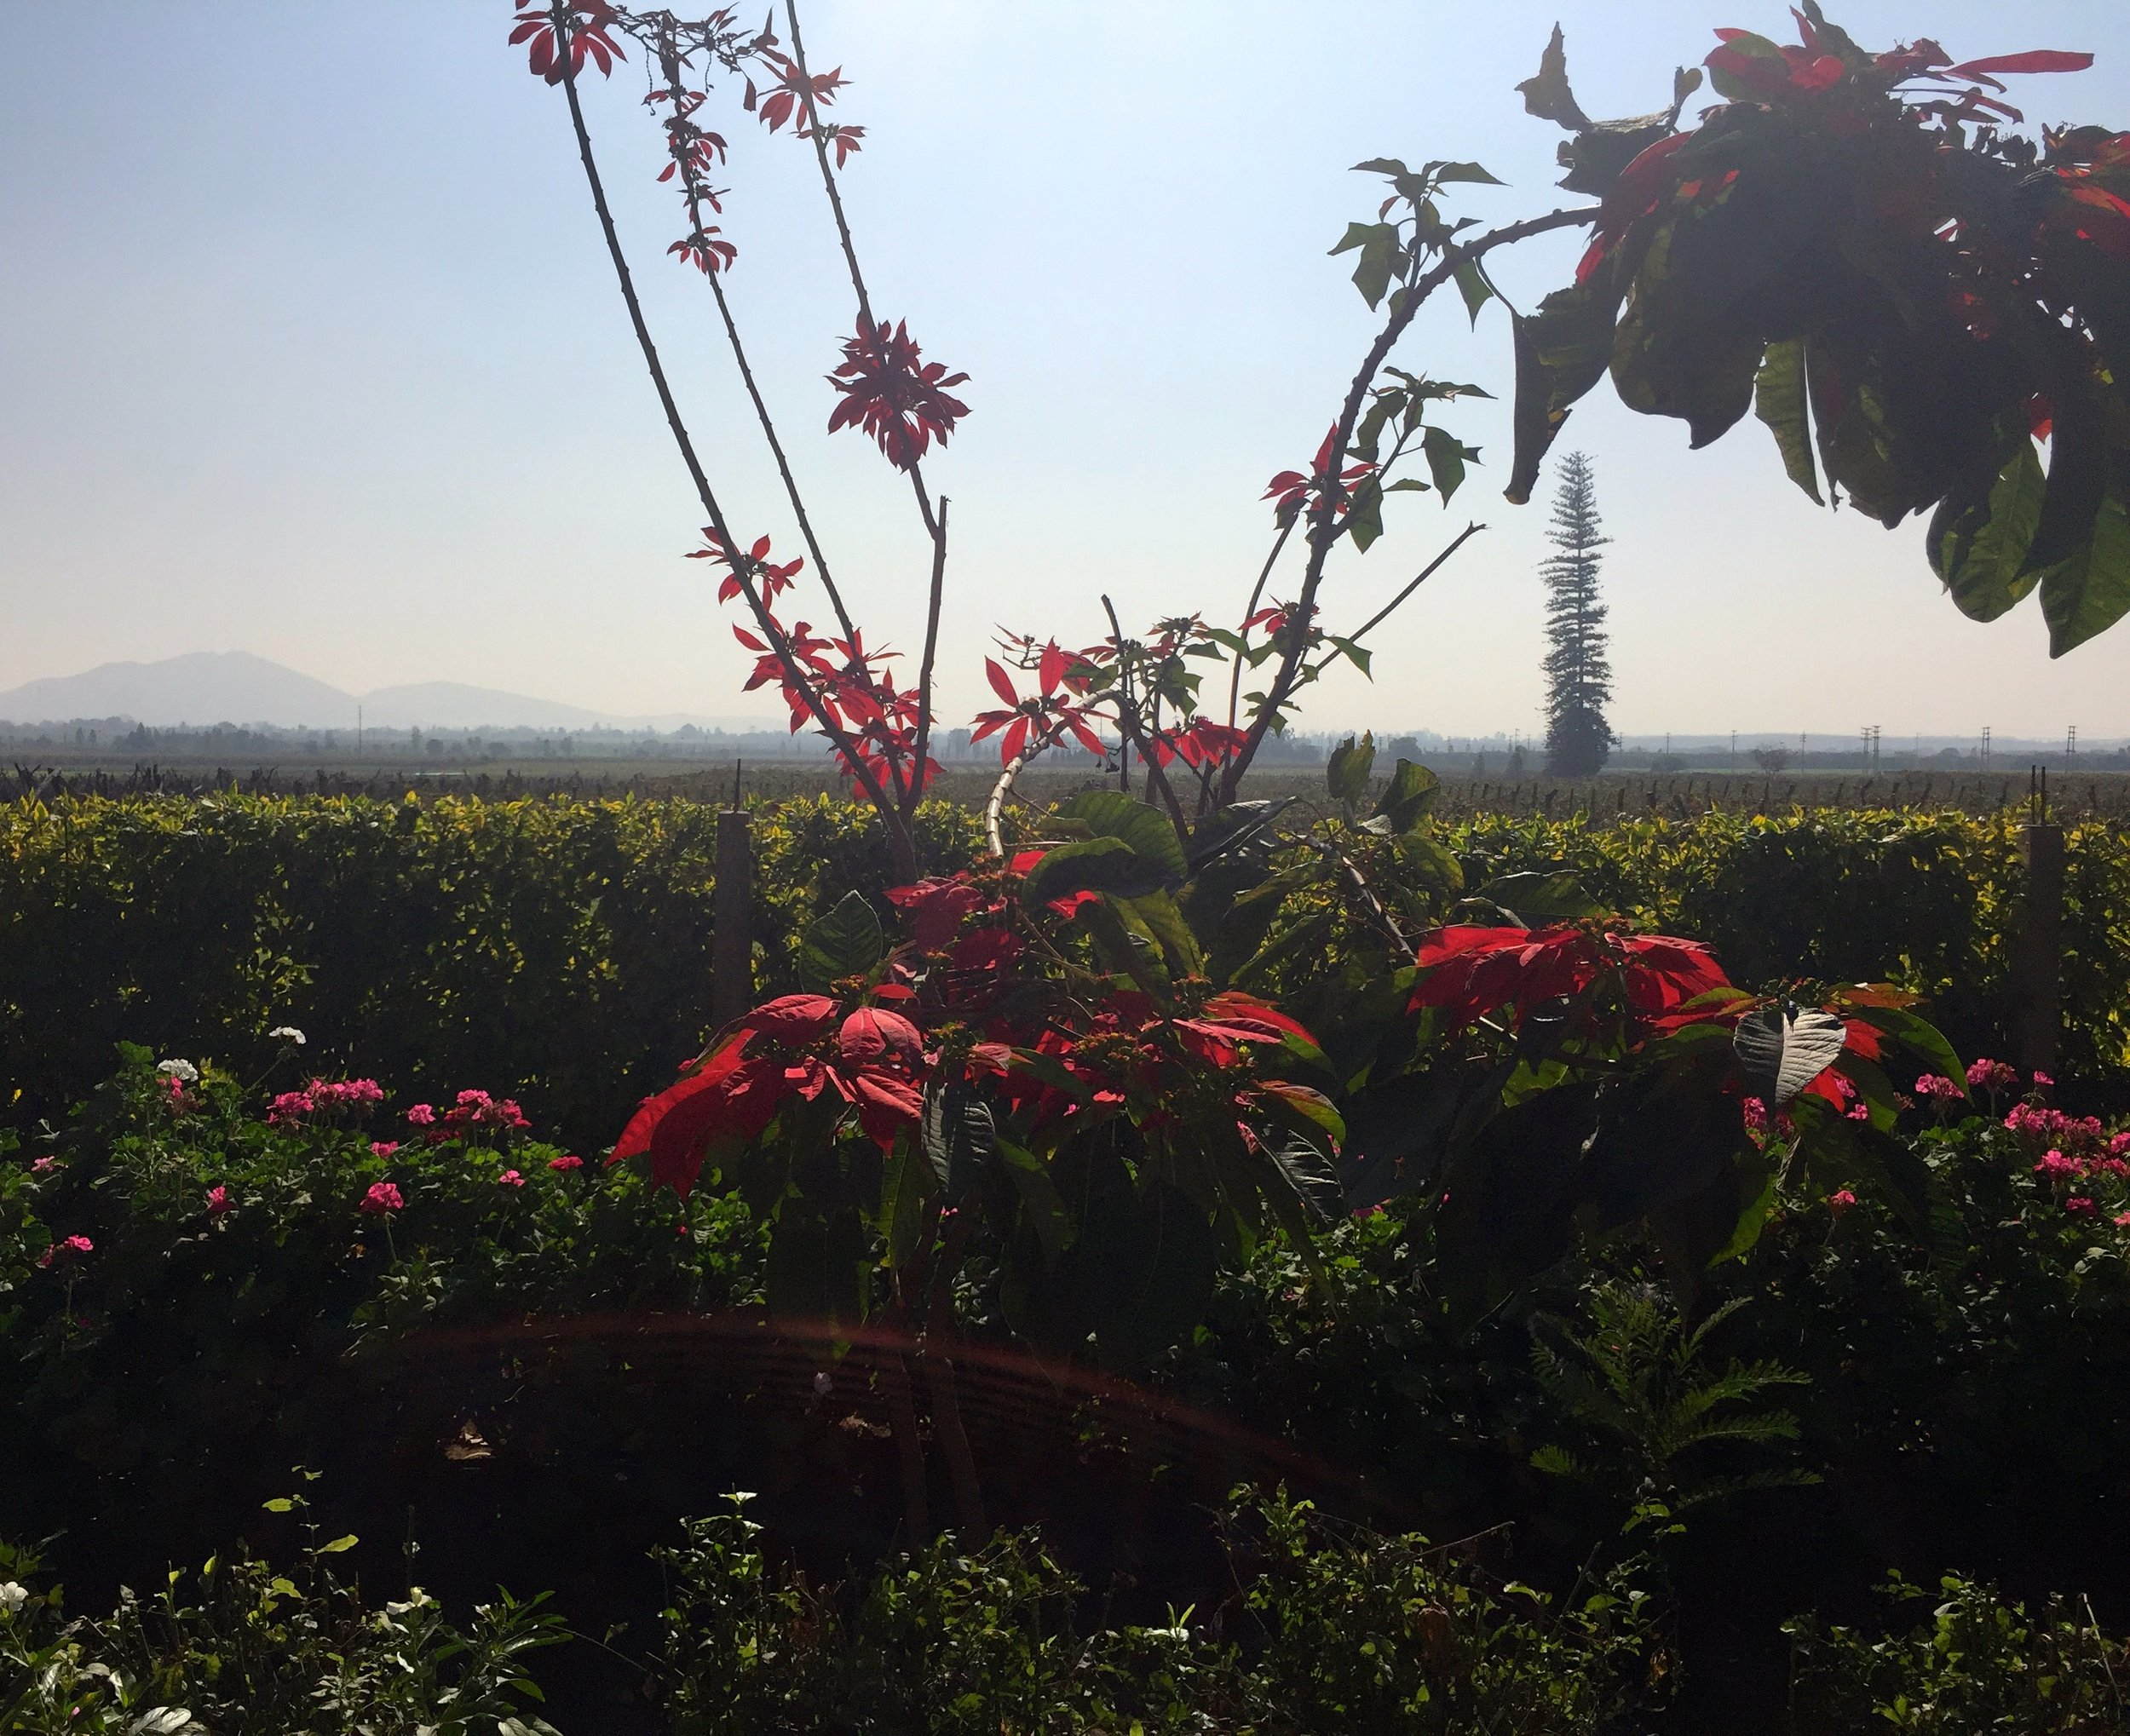 Flowers and vines, volcanoes in the distance, weird trees, too.